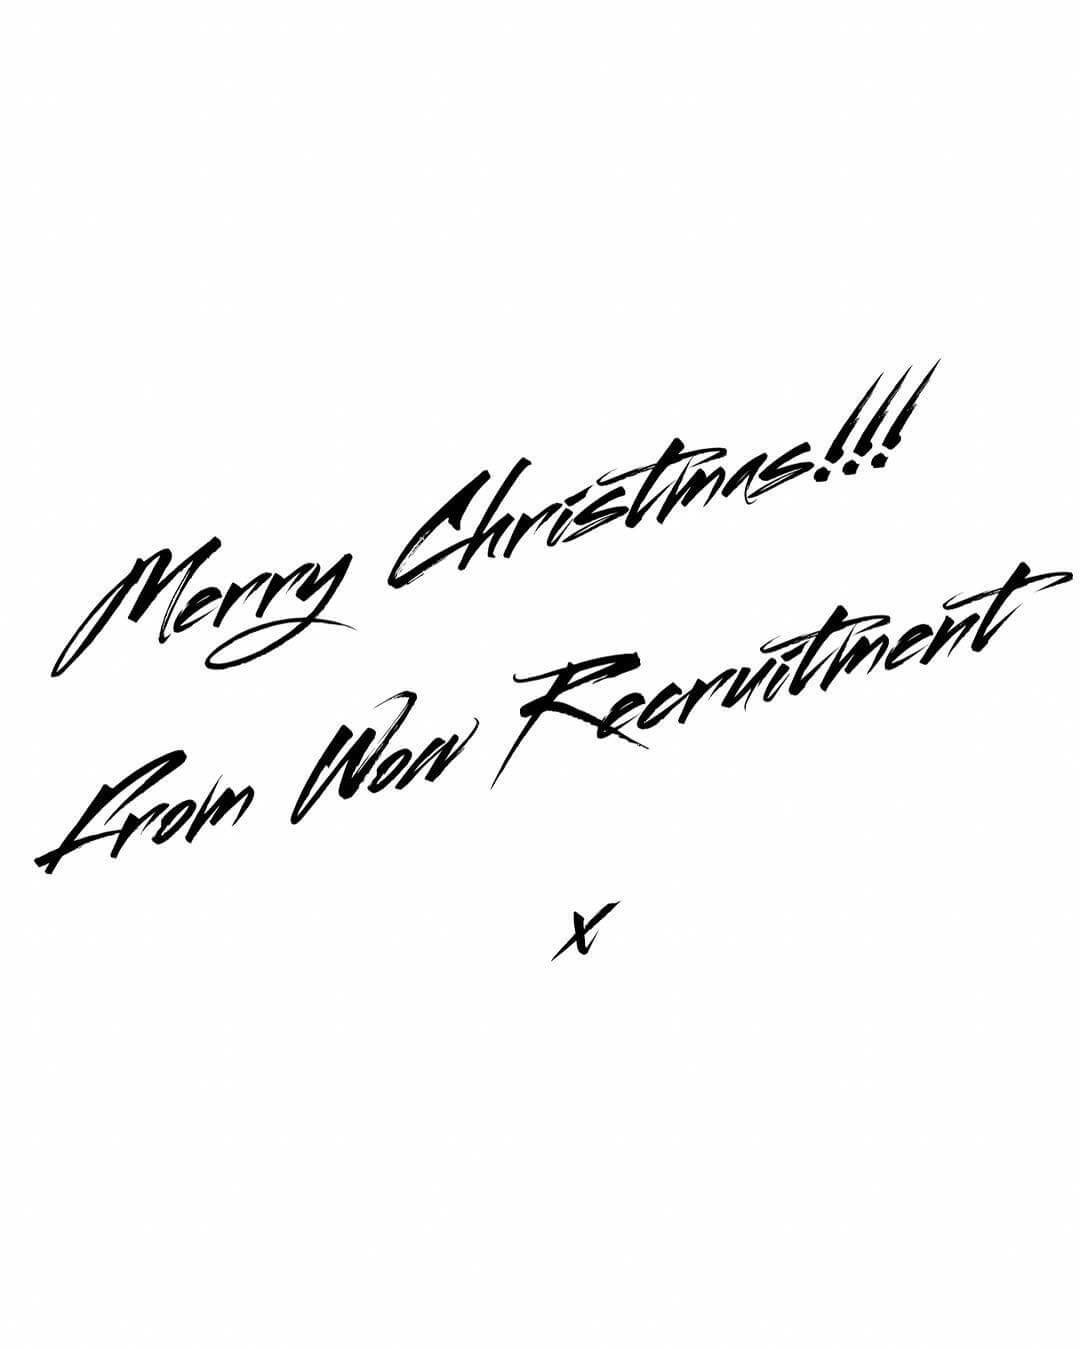 Wishing you and your family a very Merry Christmas and a happy and safe New Year 🏽